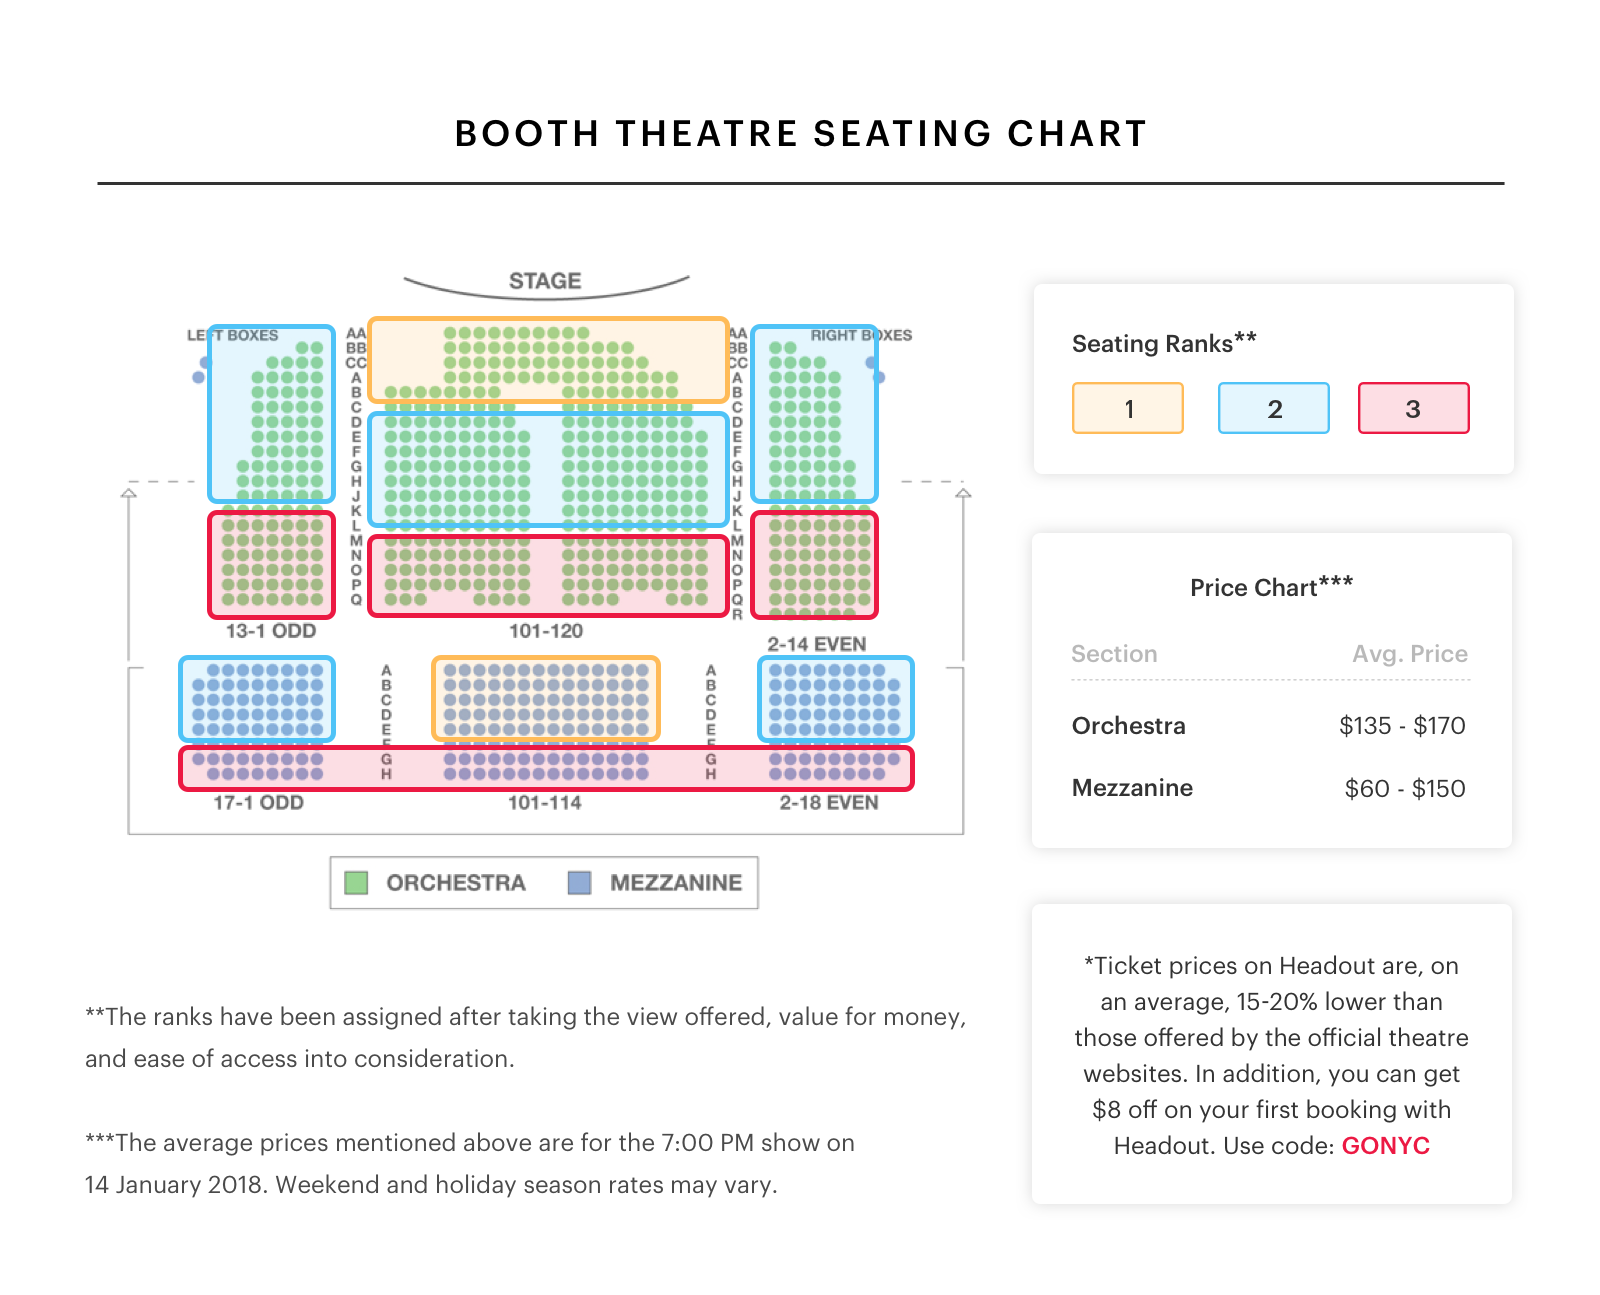 Barrymore theater madison seating chart - Winter garden theater seating chart ...